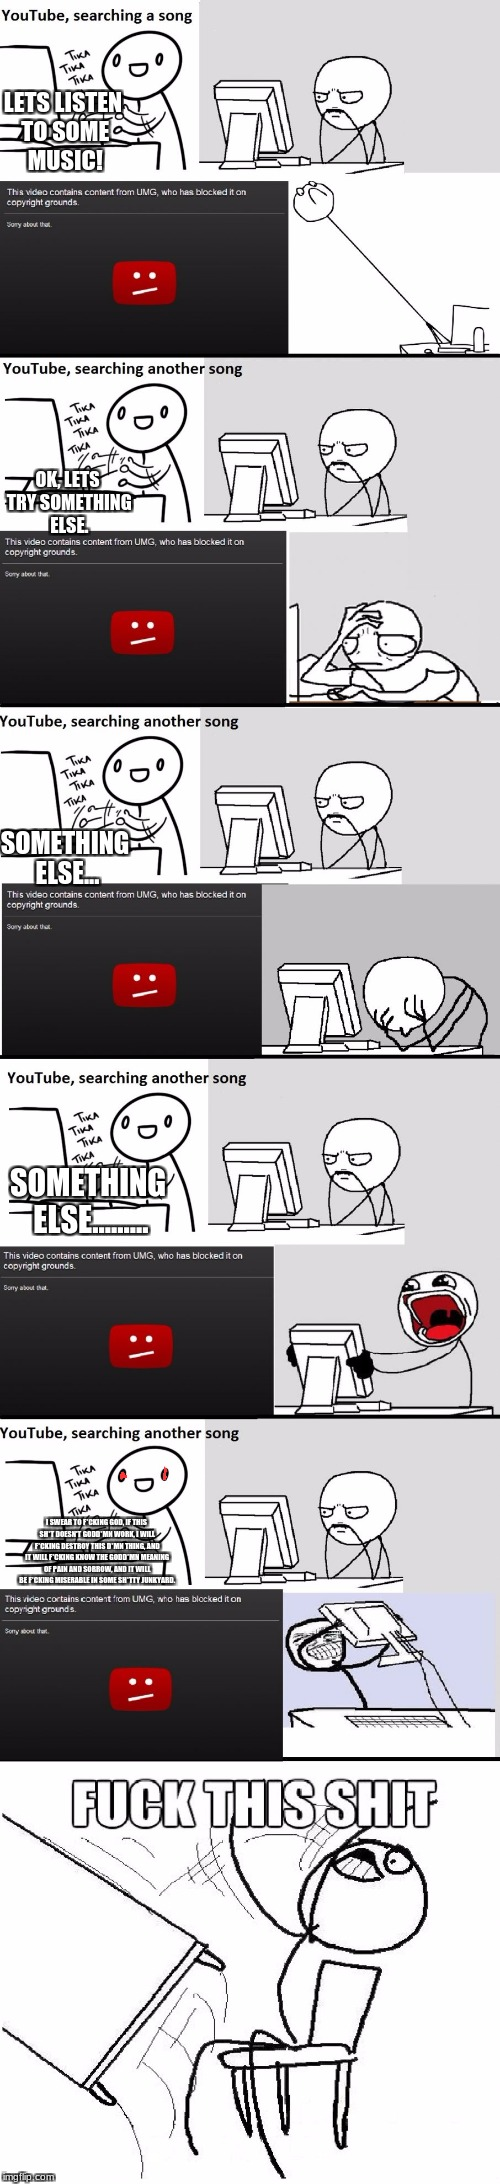 This pictures me when images don't show up. | LETS LISTEN TO SOME MUSIC! OK, LETS TRY SOMETHING ELSE. SOMETHING ELSE... SOMETHING ELSE......... I SWEAR TO F*CKING GOD, IF THIS SH*T DOESN | image tagged in youtube music song search meme,rage,pain and sorrow,red eyes | made w/ Imgflip meme maker